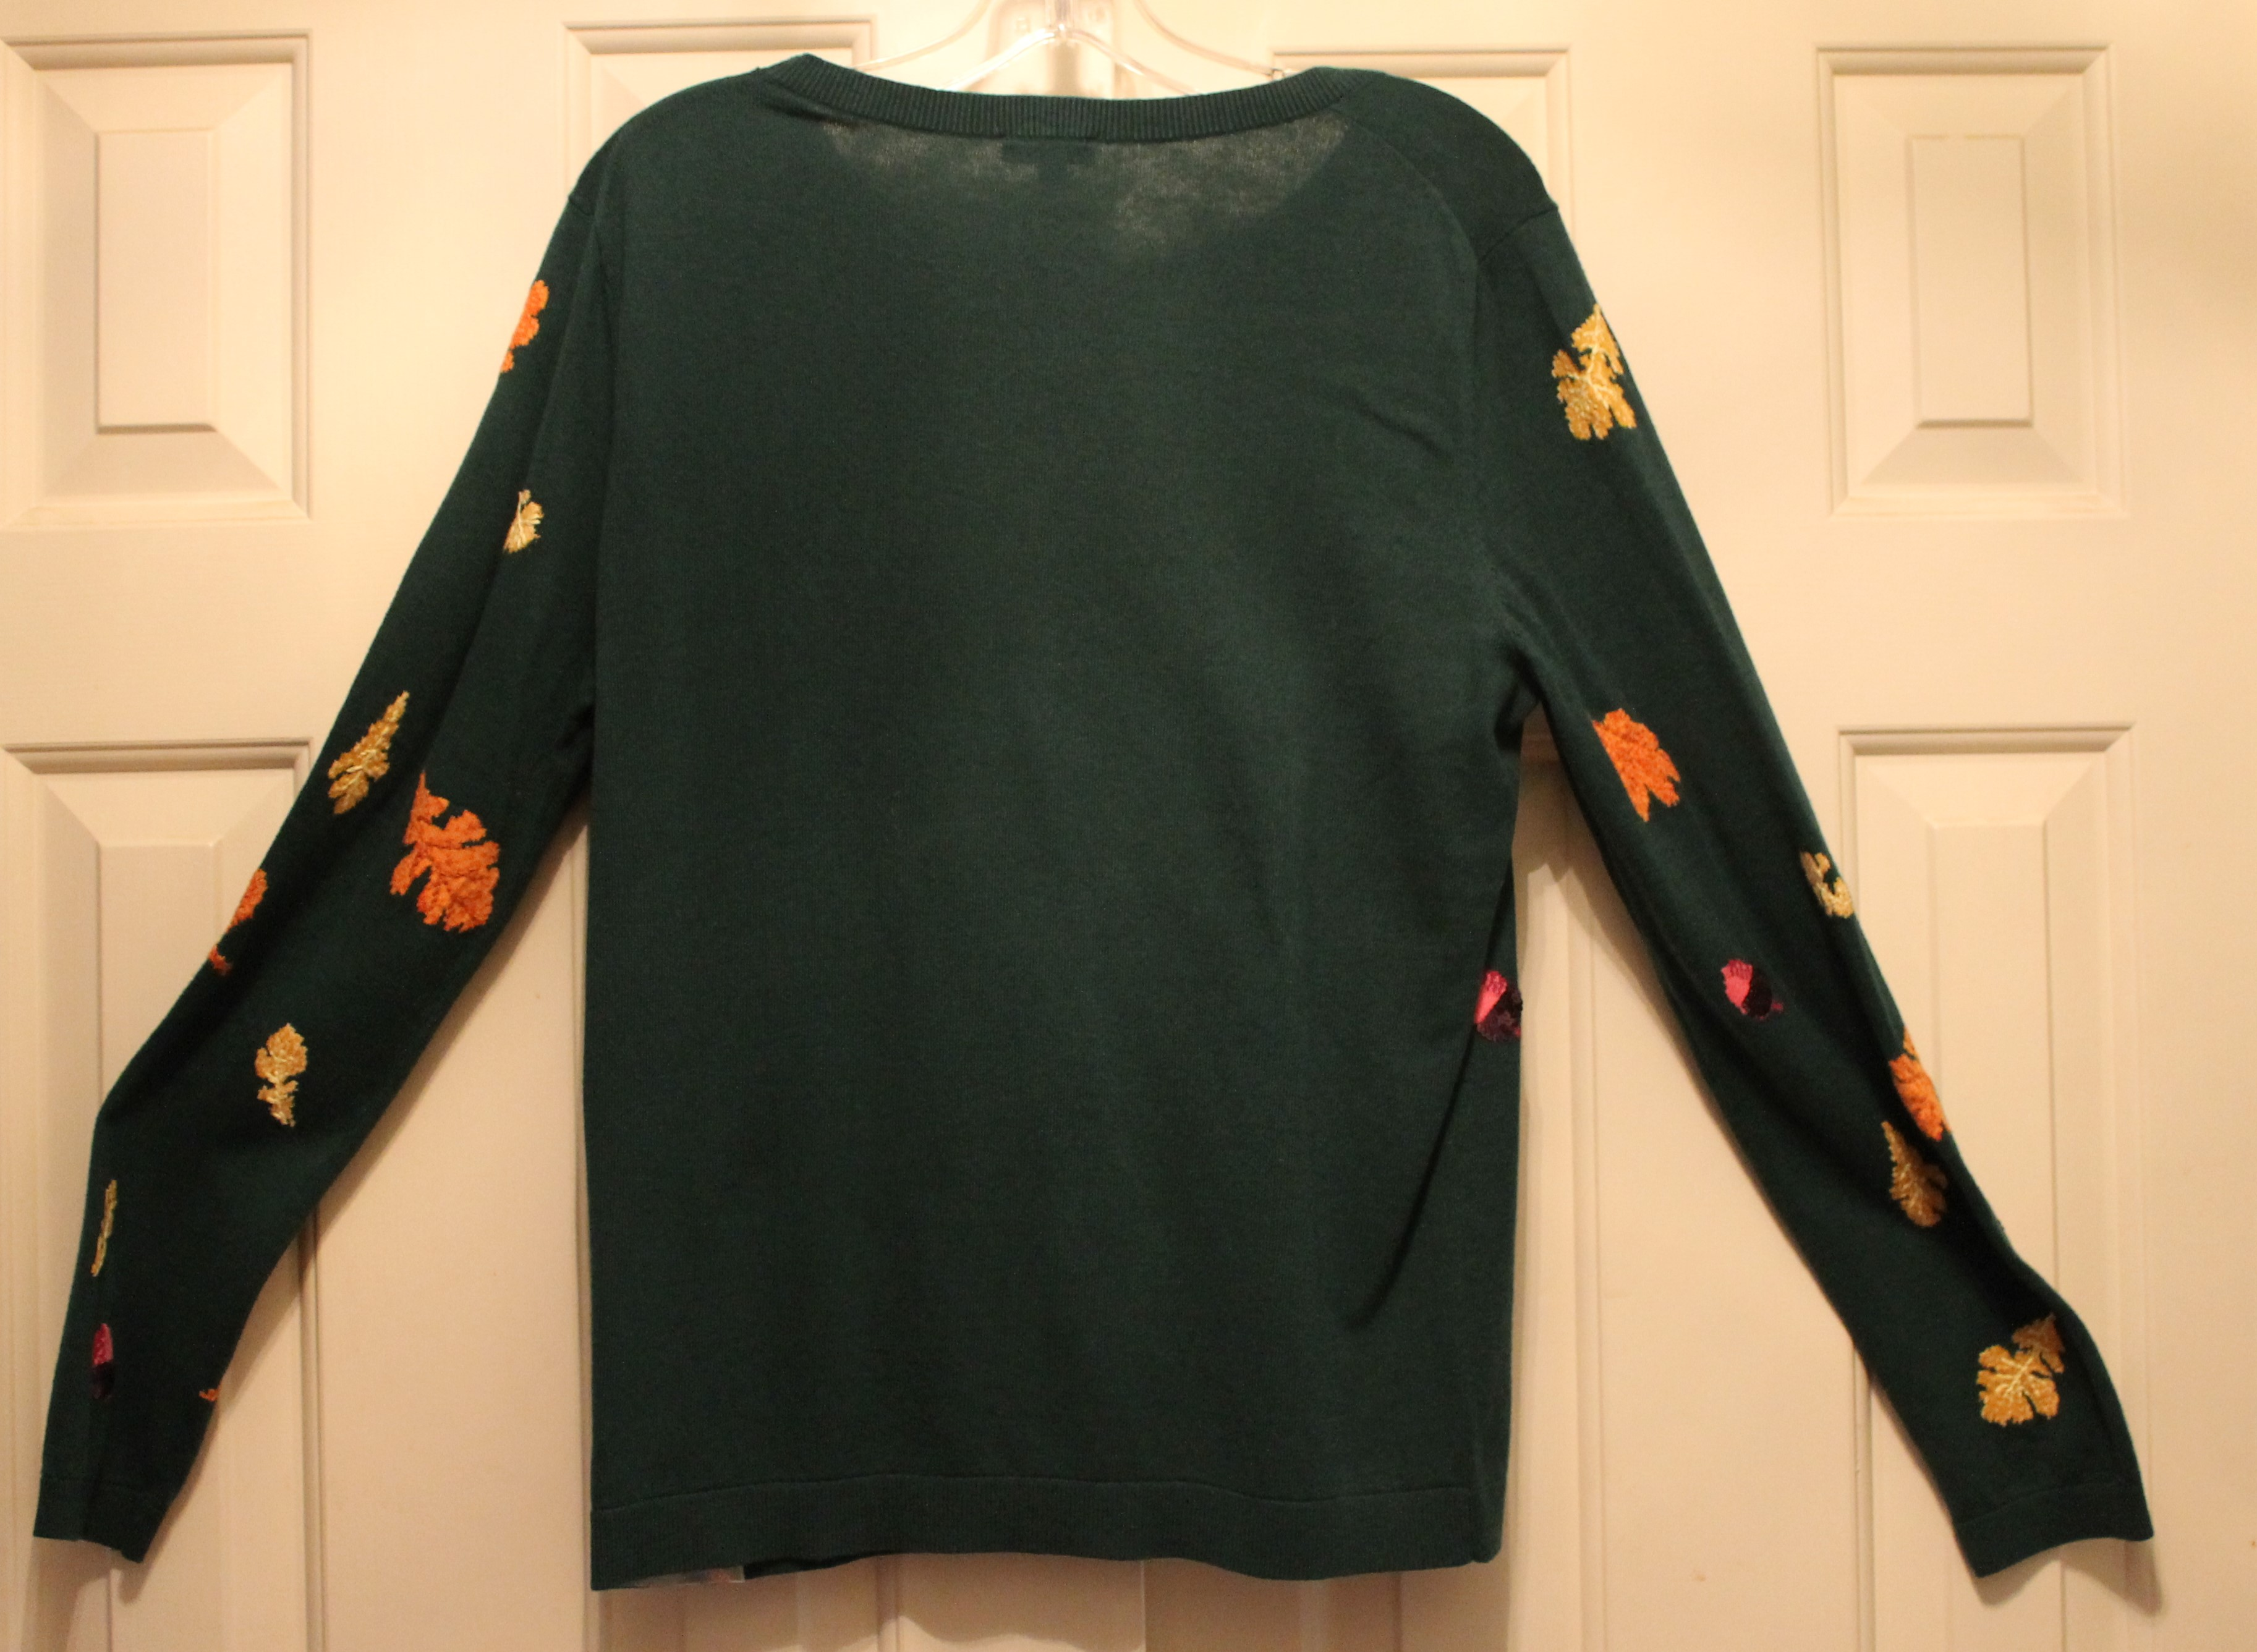 Talbots-Size-M-Green-Cotton-Blend-AUTUMN-Long-Sleeve-Top_64049E.jpg